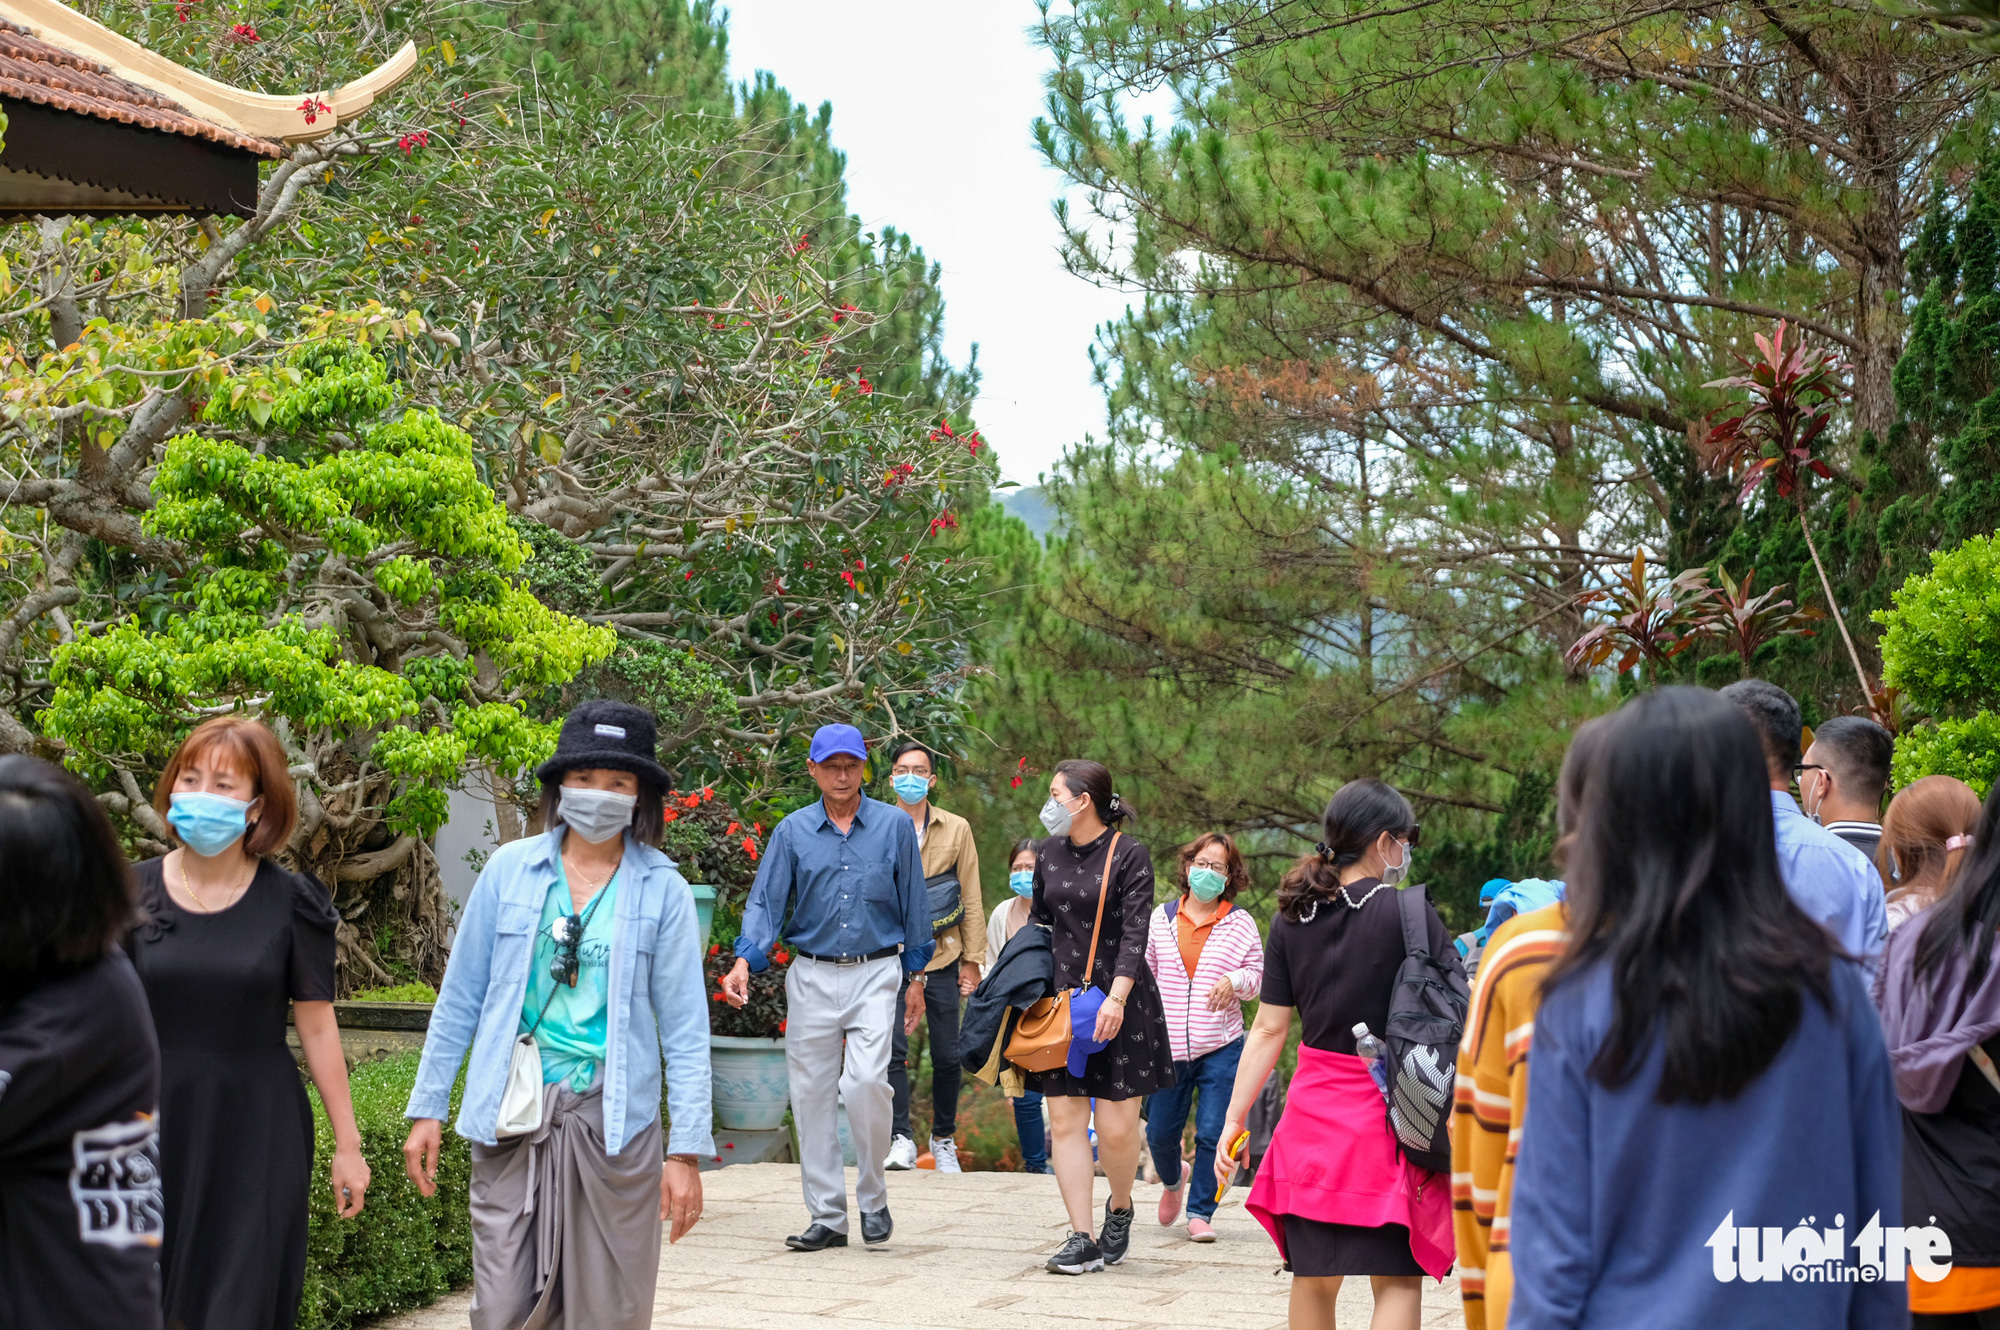 Truc Lam Zen Monastery in Da Lat City, Vietnam is filled with visitors, May 2, 2021. Photo: Duc Tho / Tuoi Tre